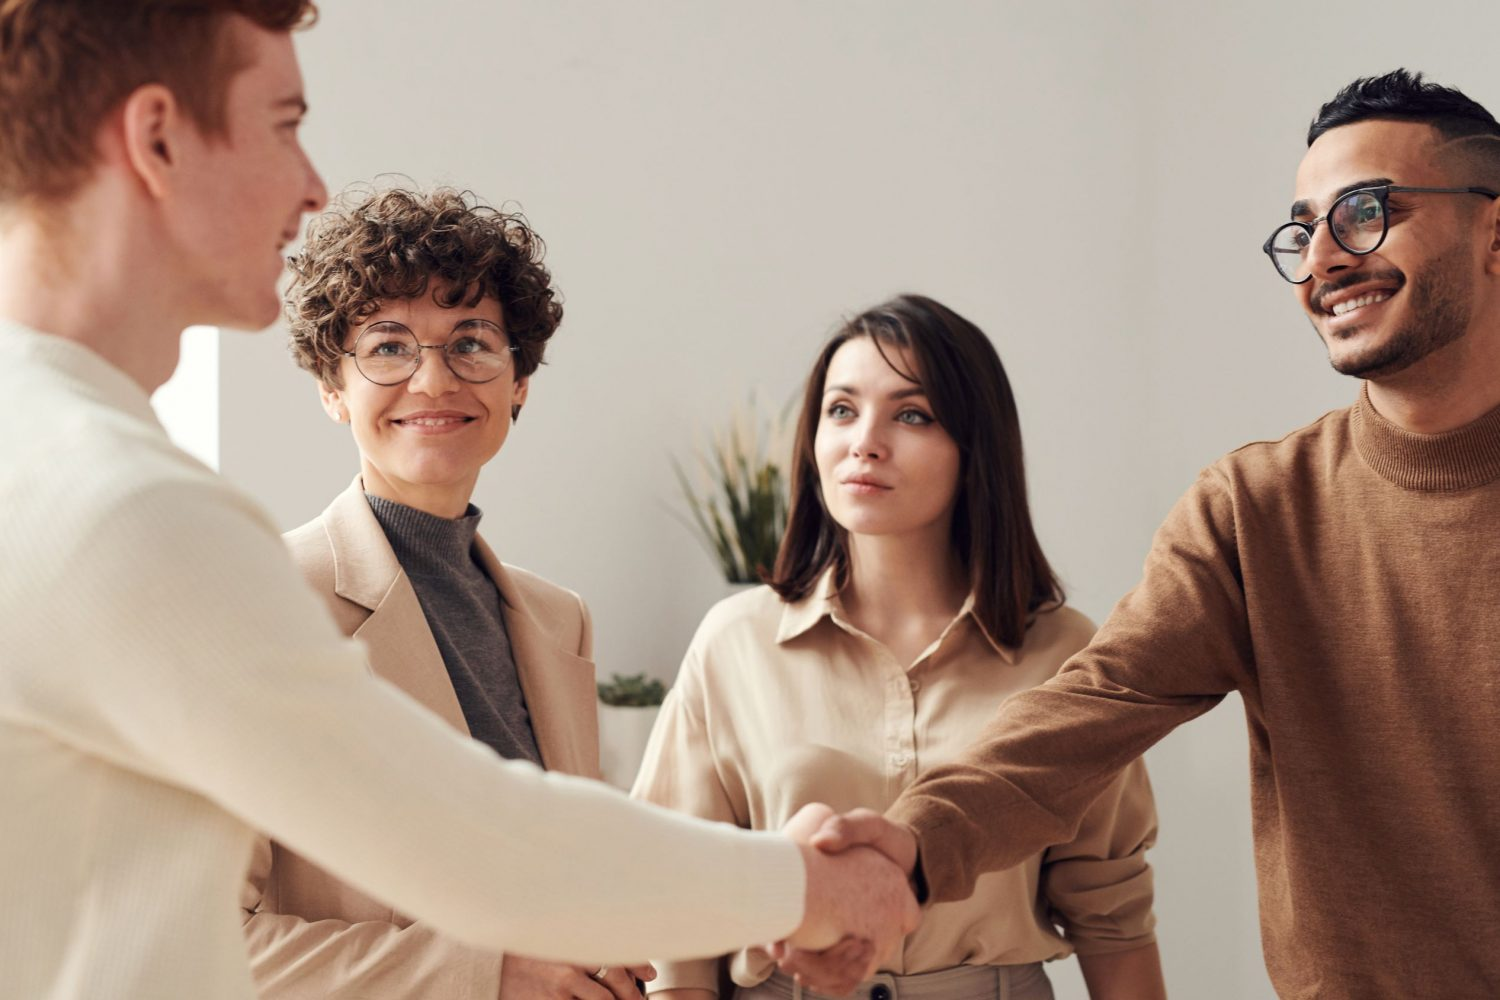 New colleagues shaking hands to welcome each other. Photo by Fauxels by Pexels